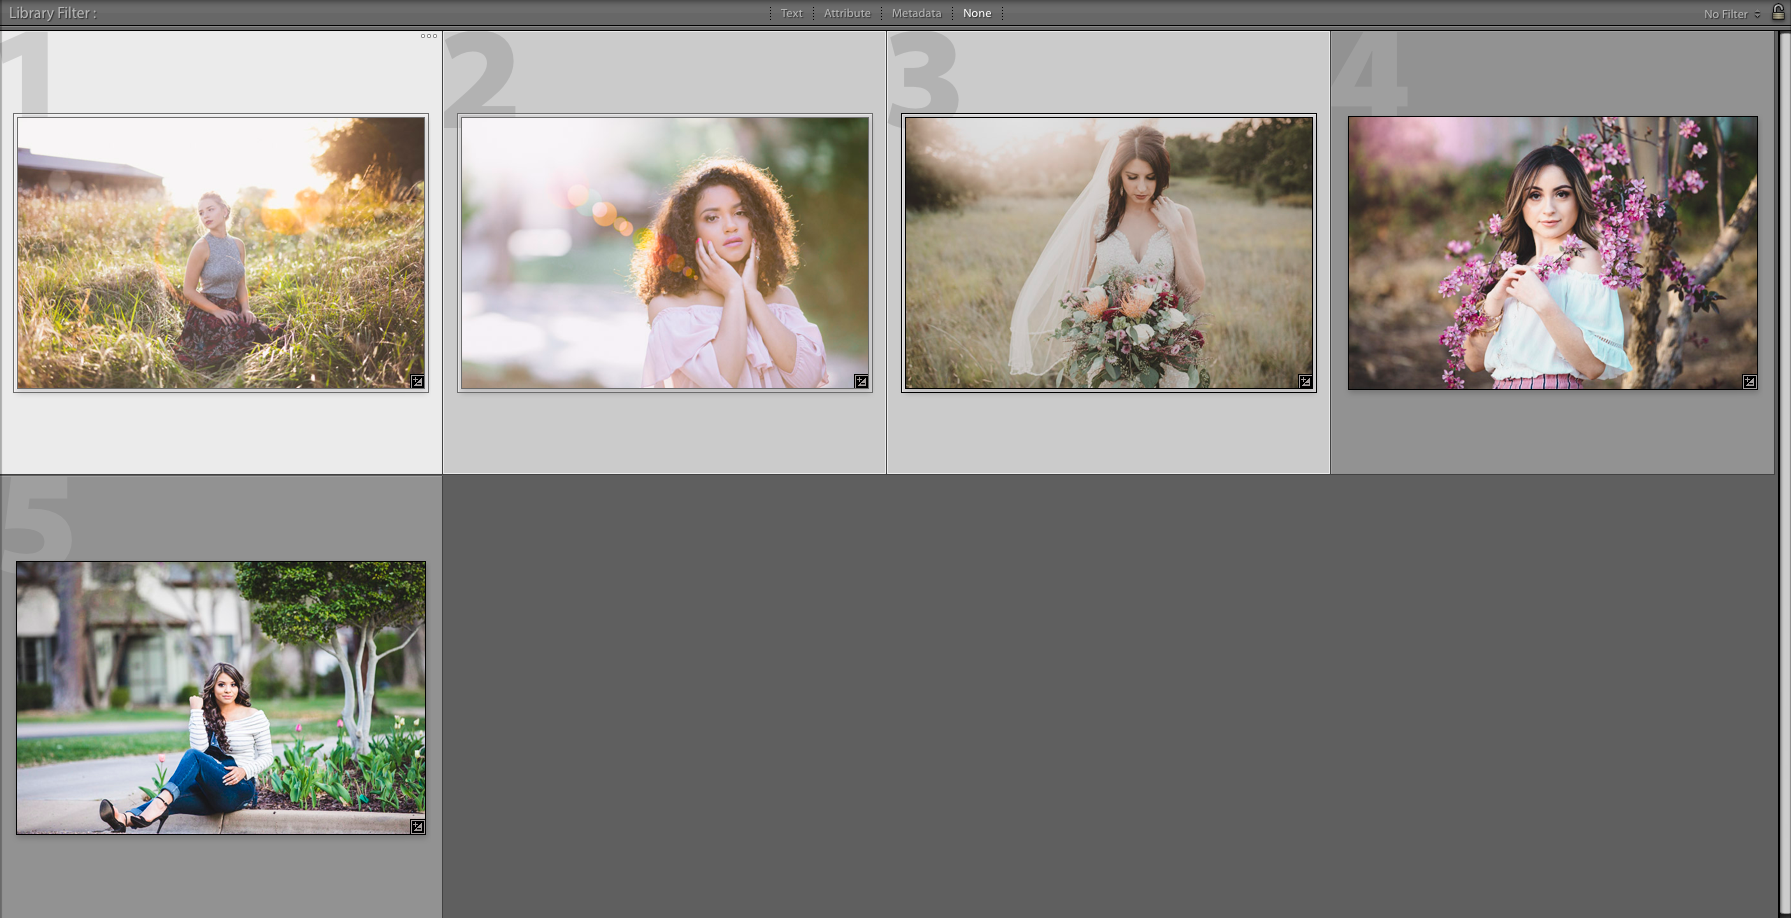 How to Select Multiple Photos in Lightroom